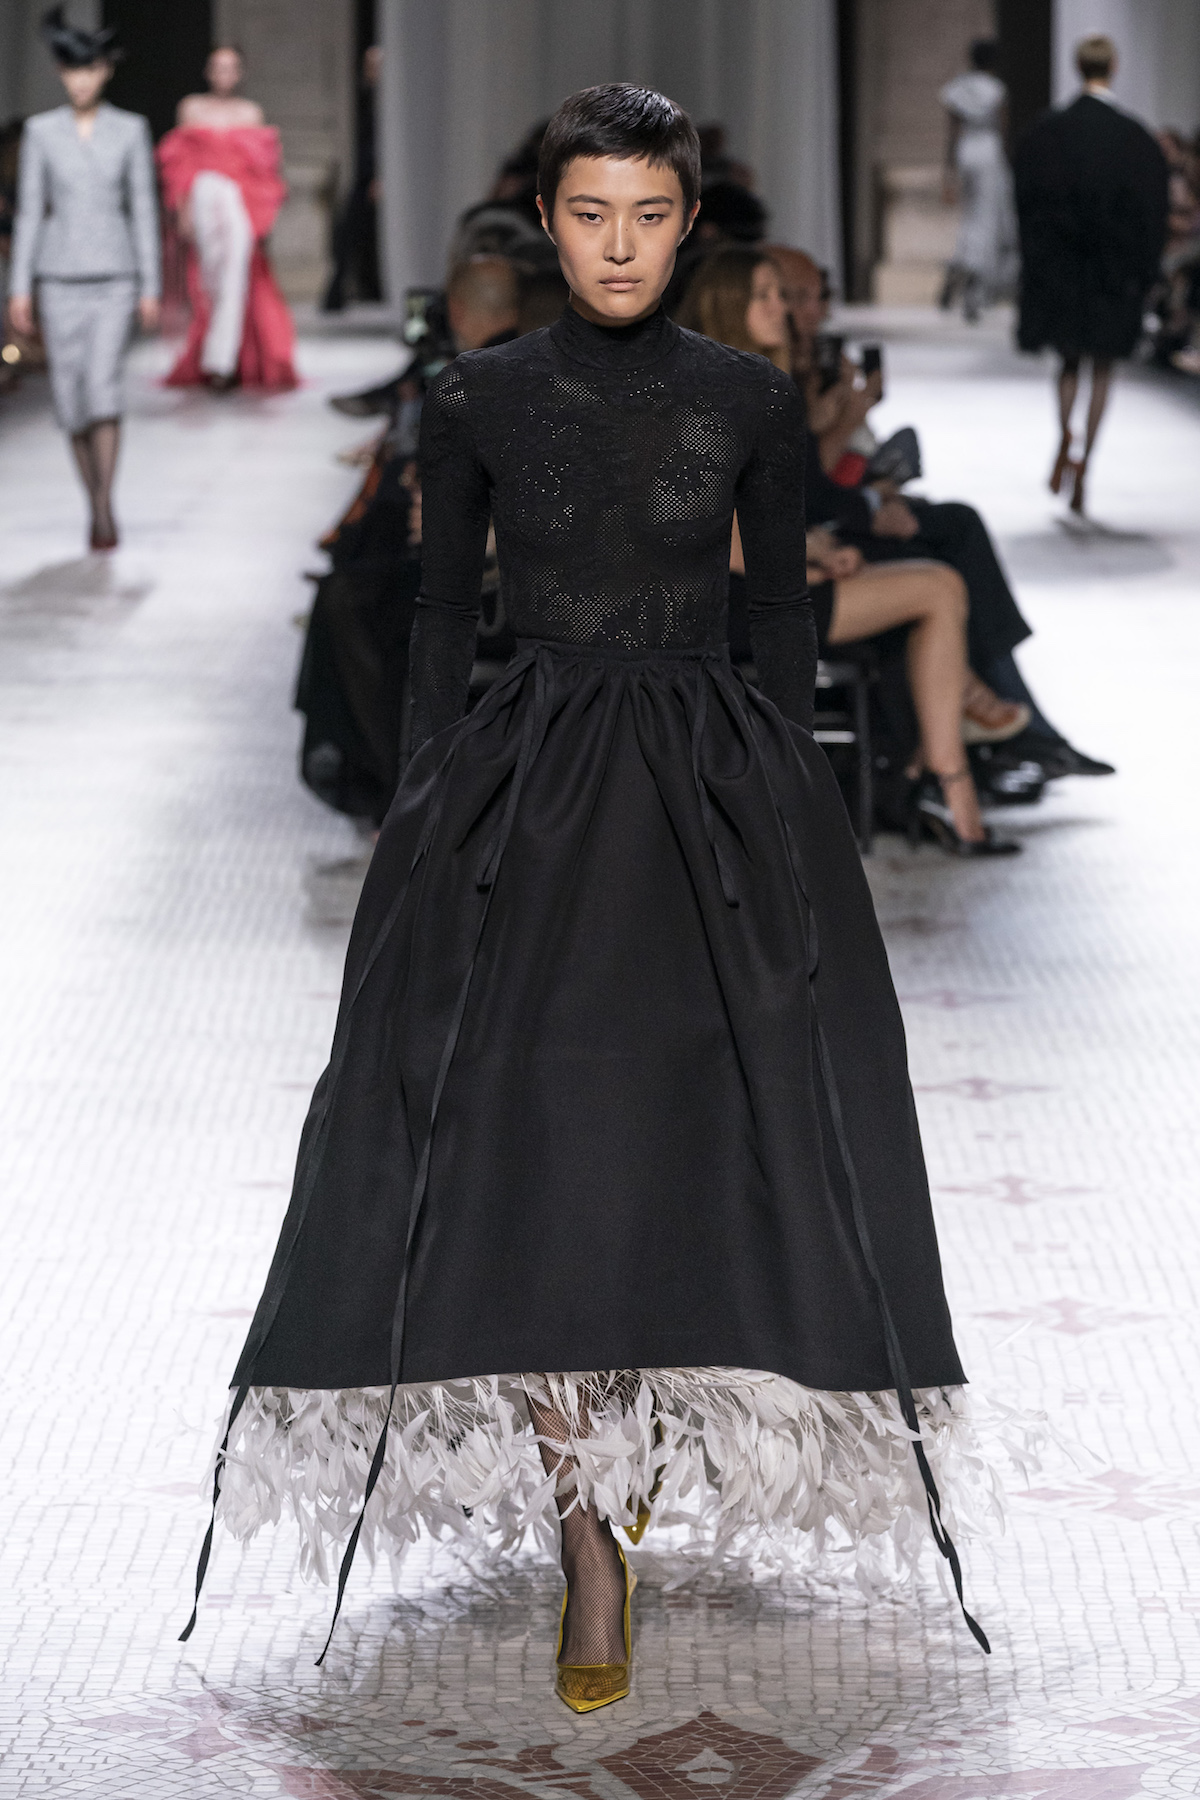 Givenchy Haute Couture Fall Winter 2019 (Look 6).jpg